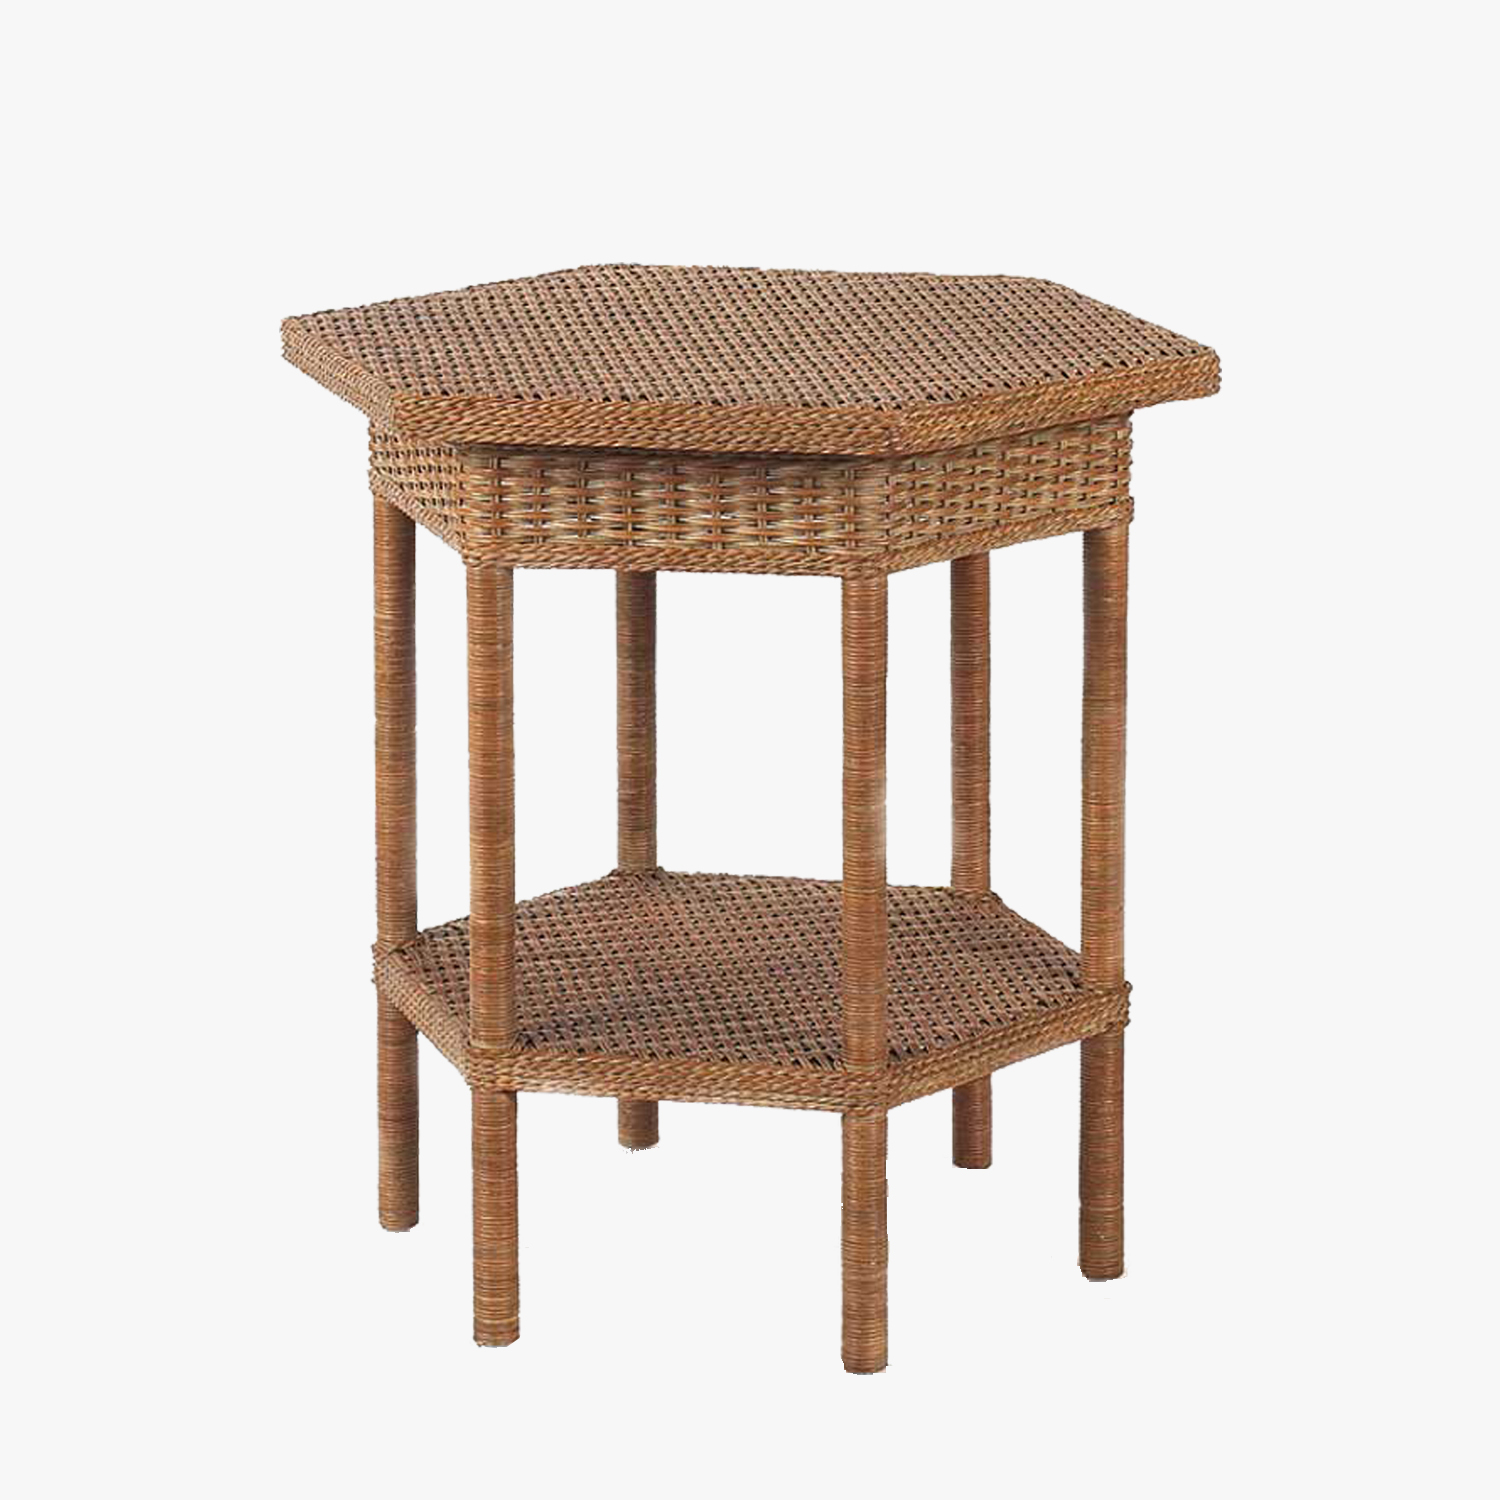 Hexagon-Wicker-Side-Table.jpg